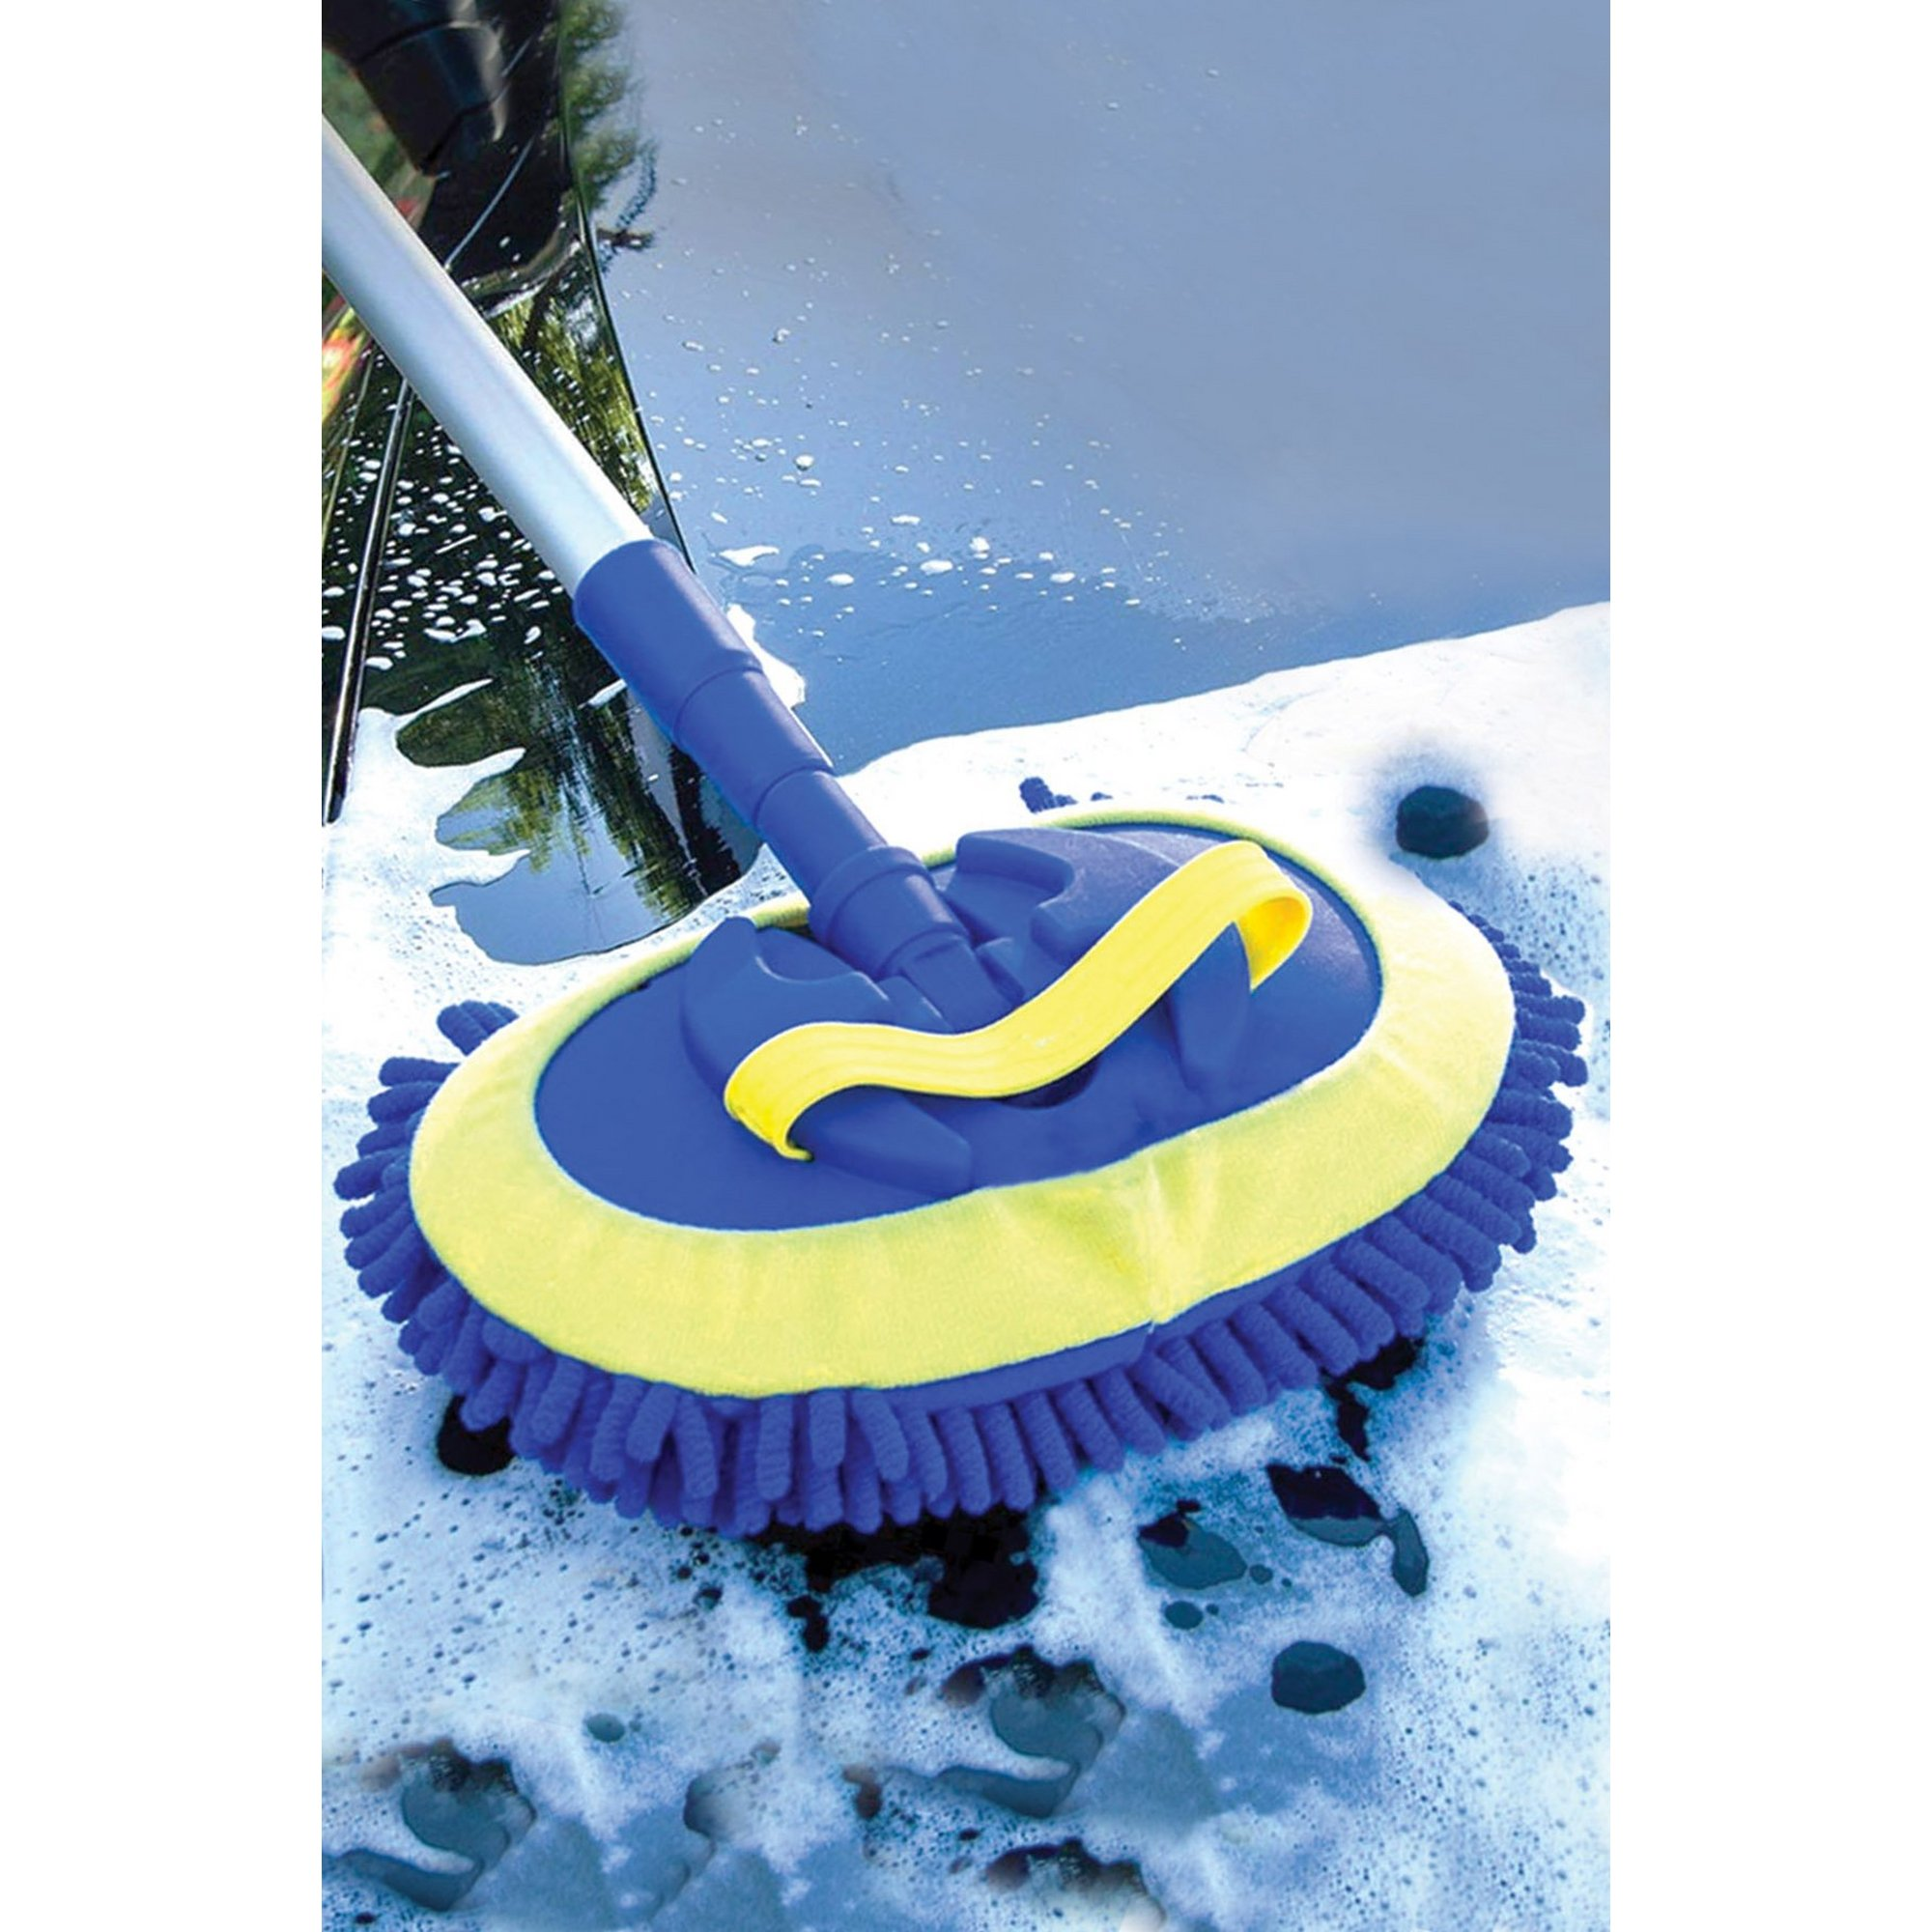 Image of Telescopic Water Flow Brush with Chenille Head